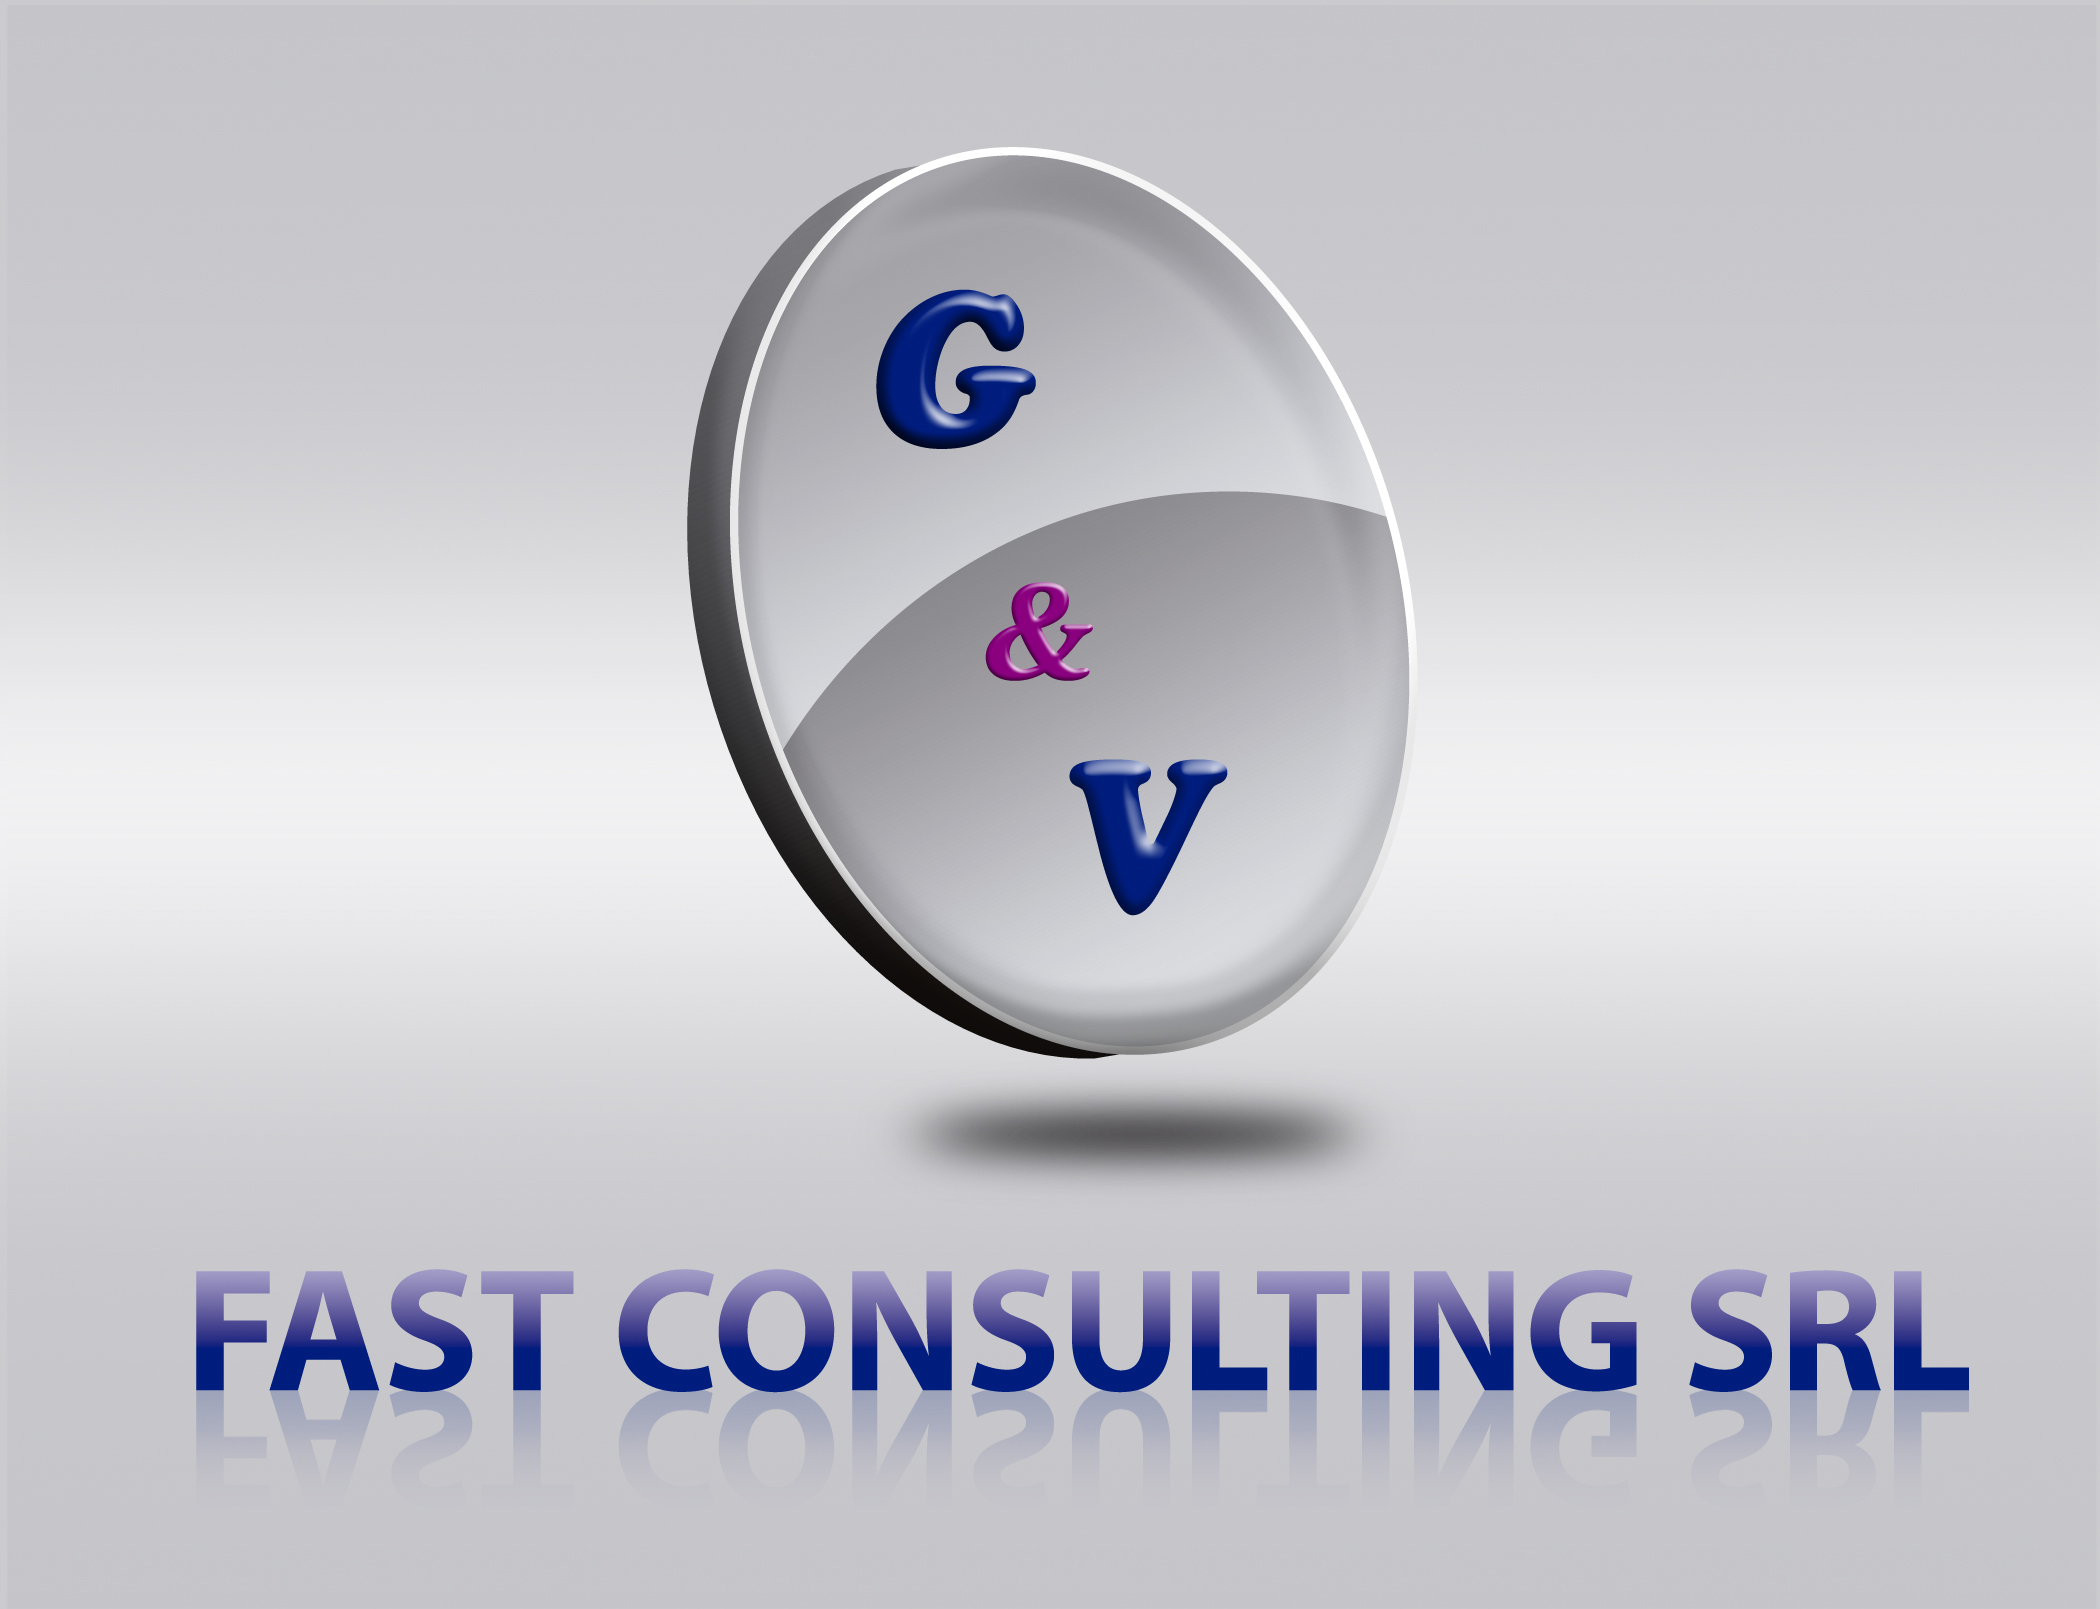 G&V FAST CONSULTING